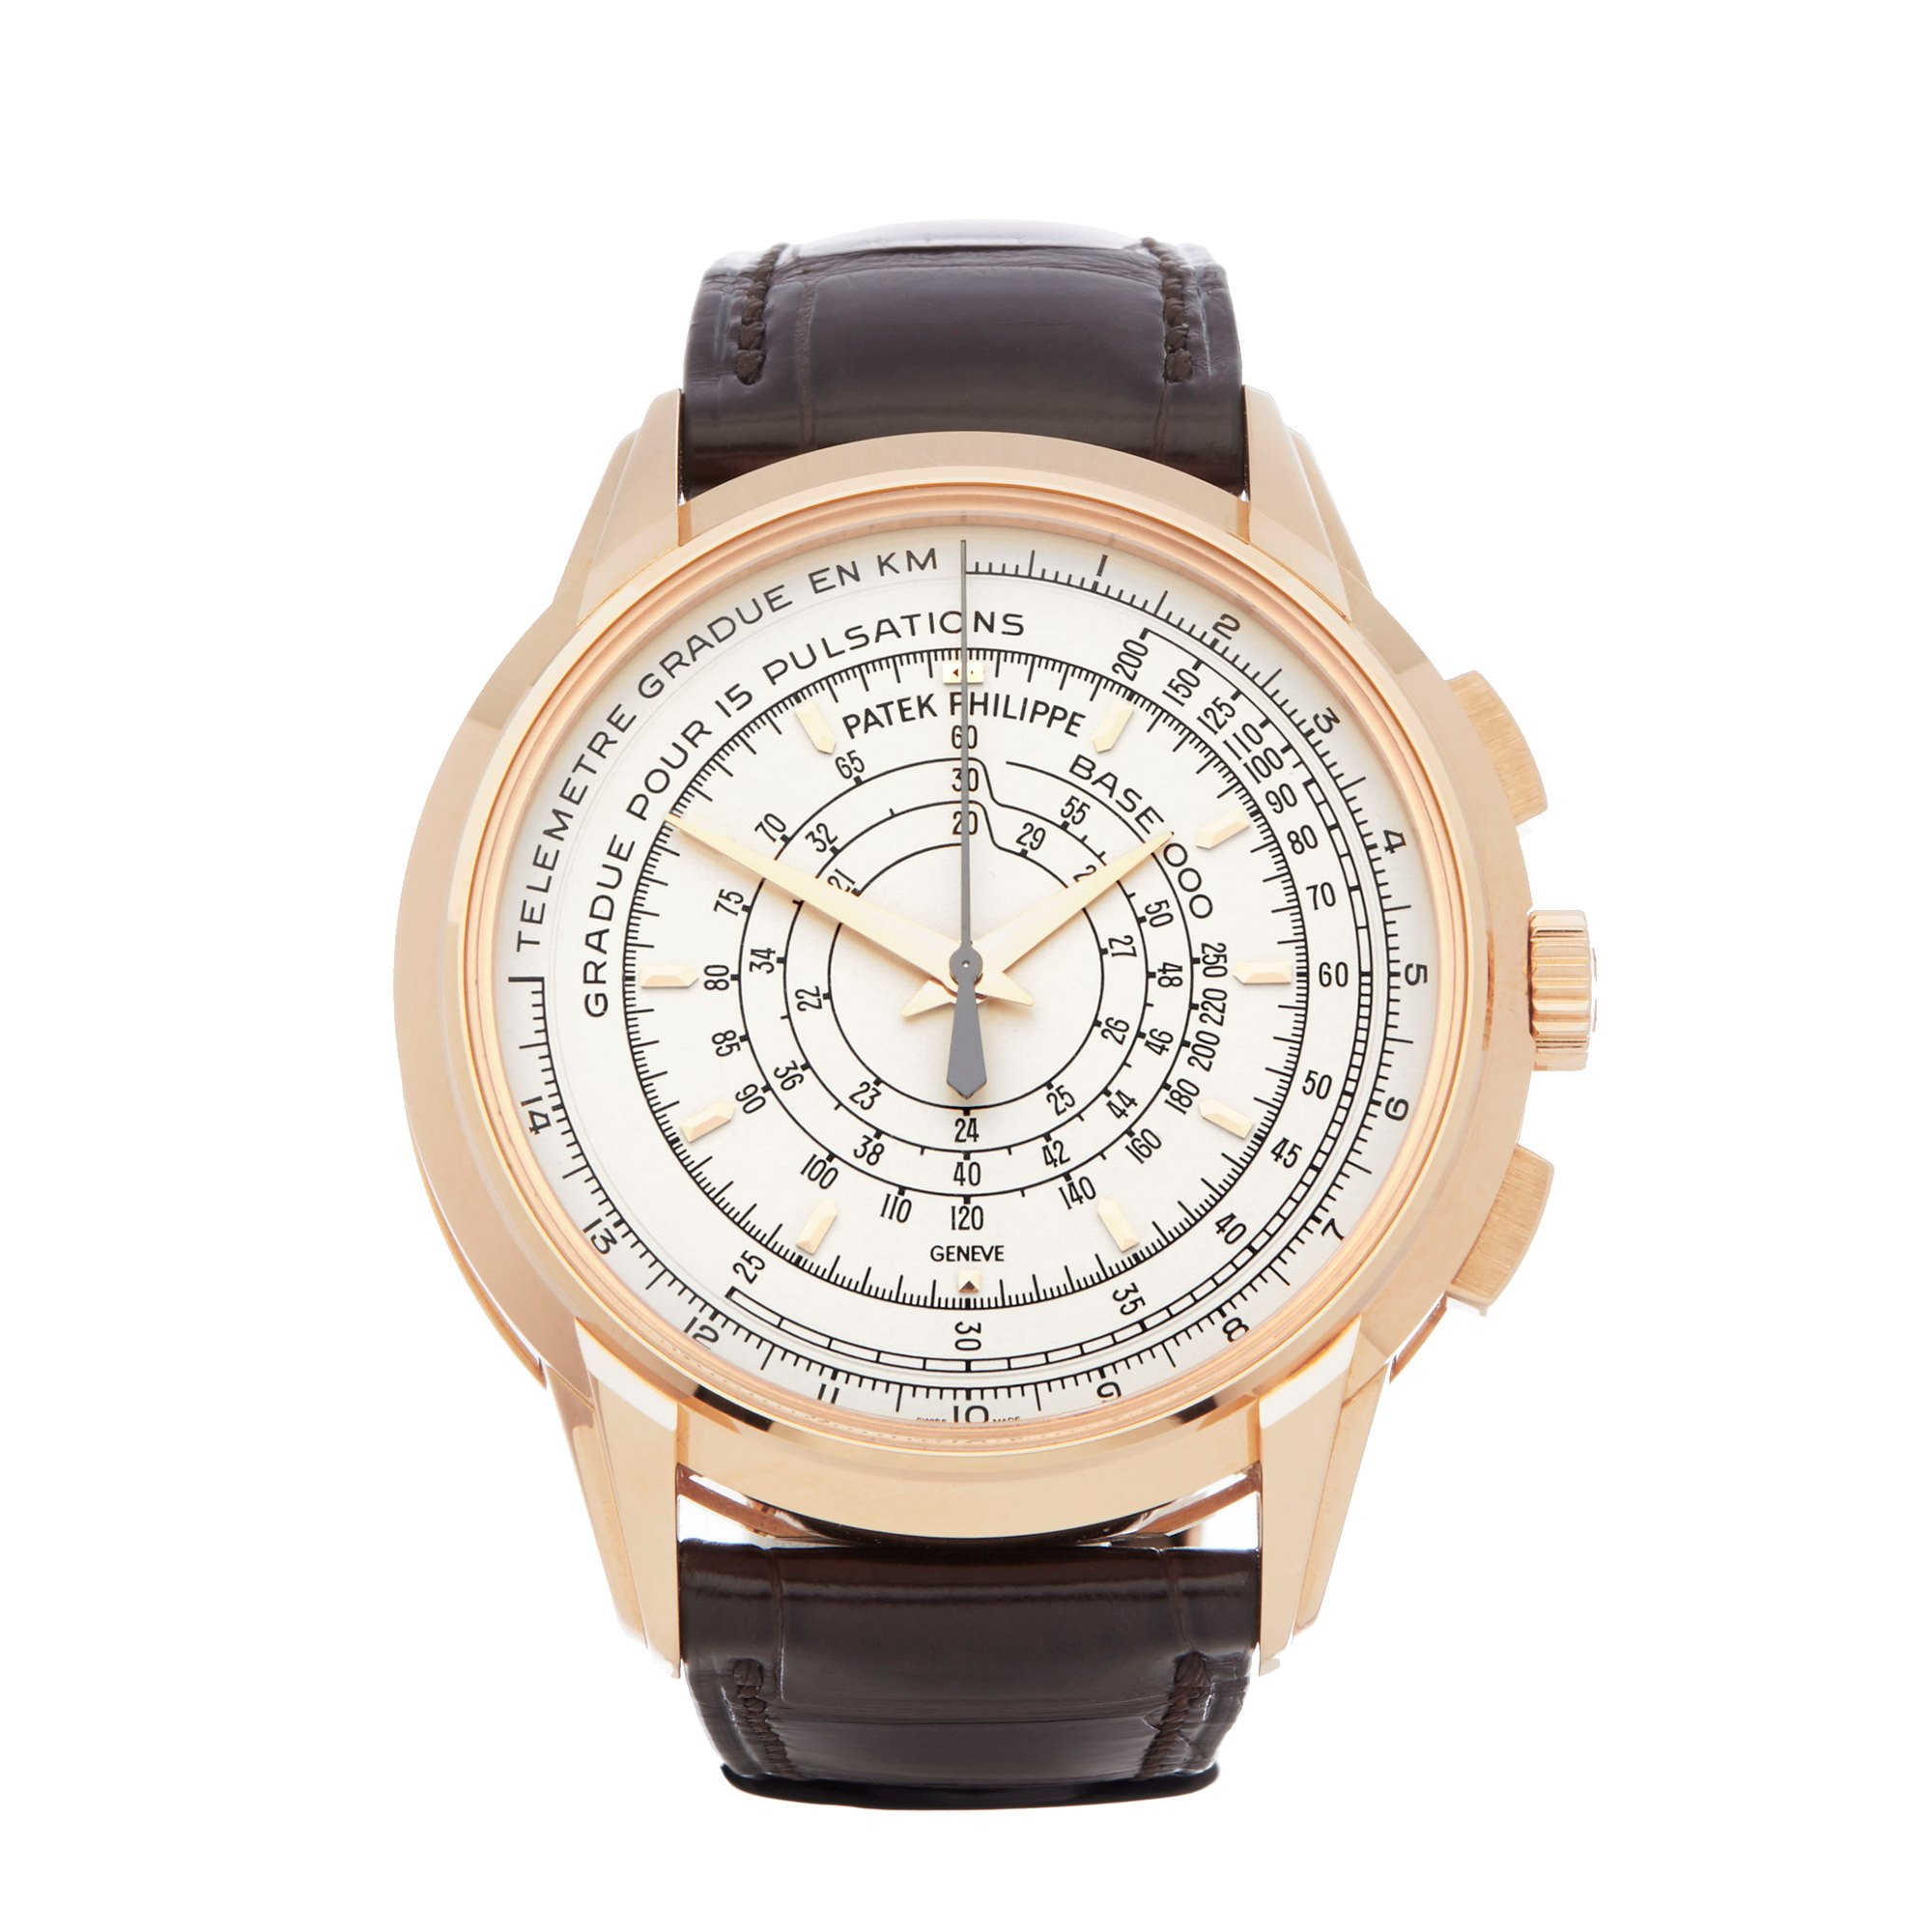 Lot 7 - Patek Philippe Multi-Scale Chronograph Eric Clapton's 175th Anniversary Watch